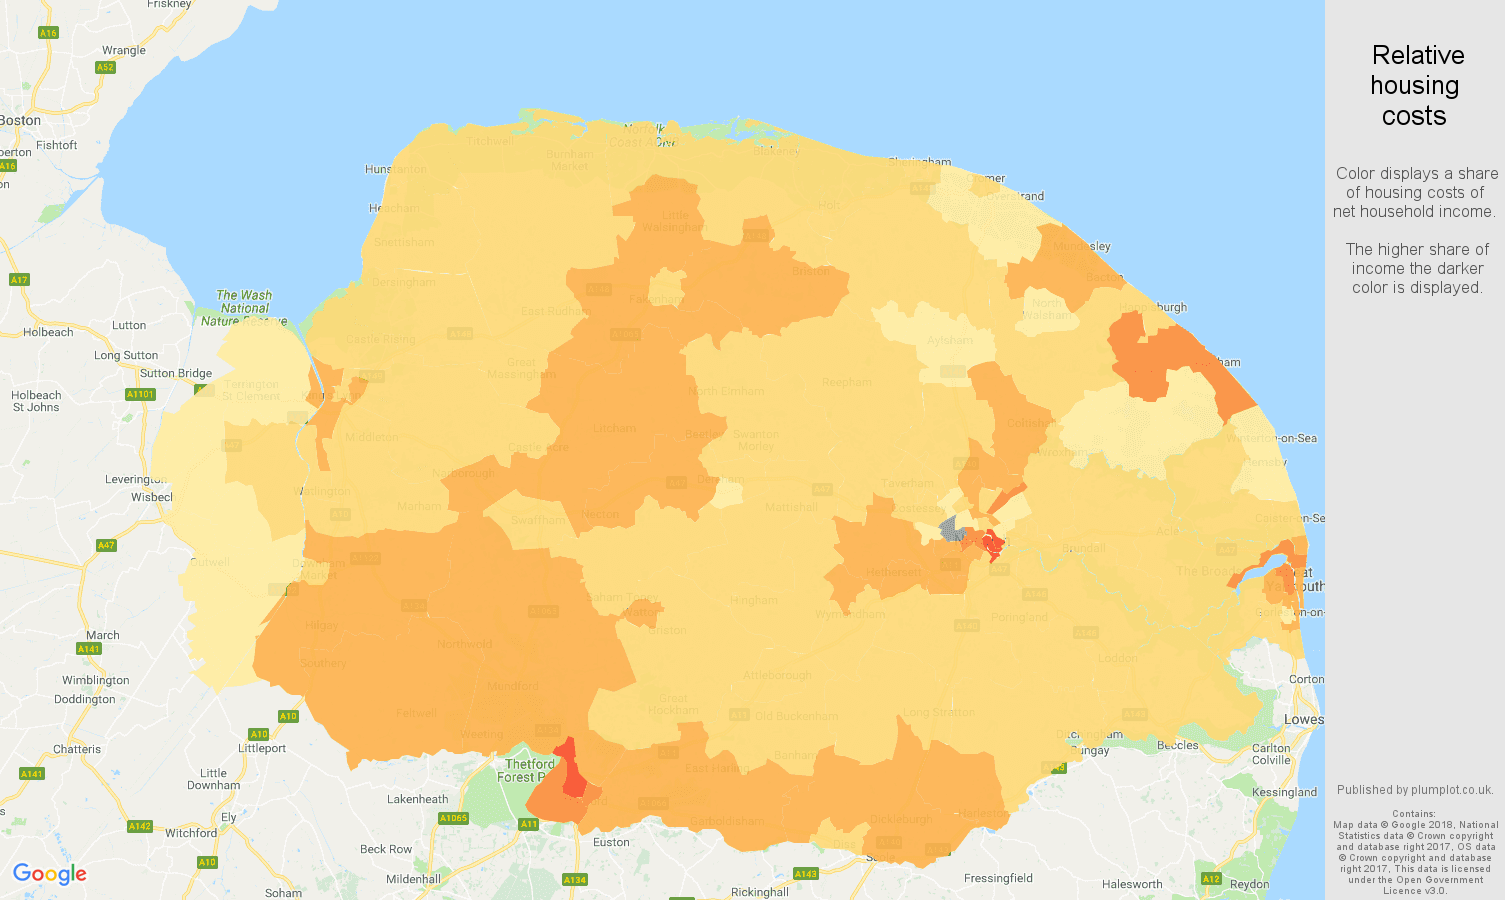 Norfolk relative housing costs map